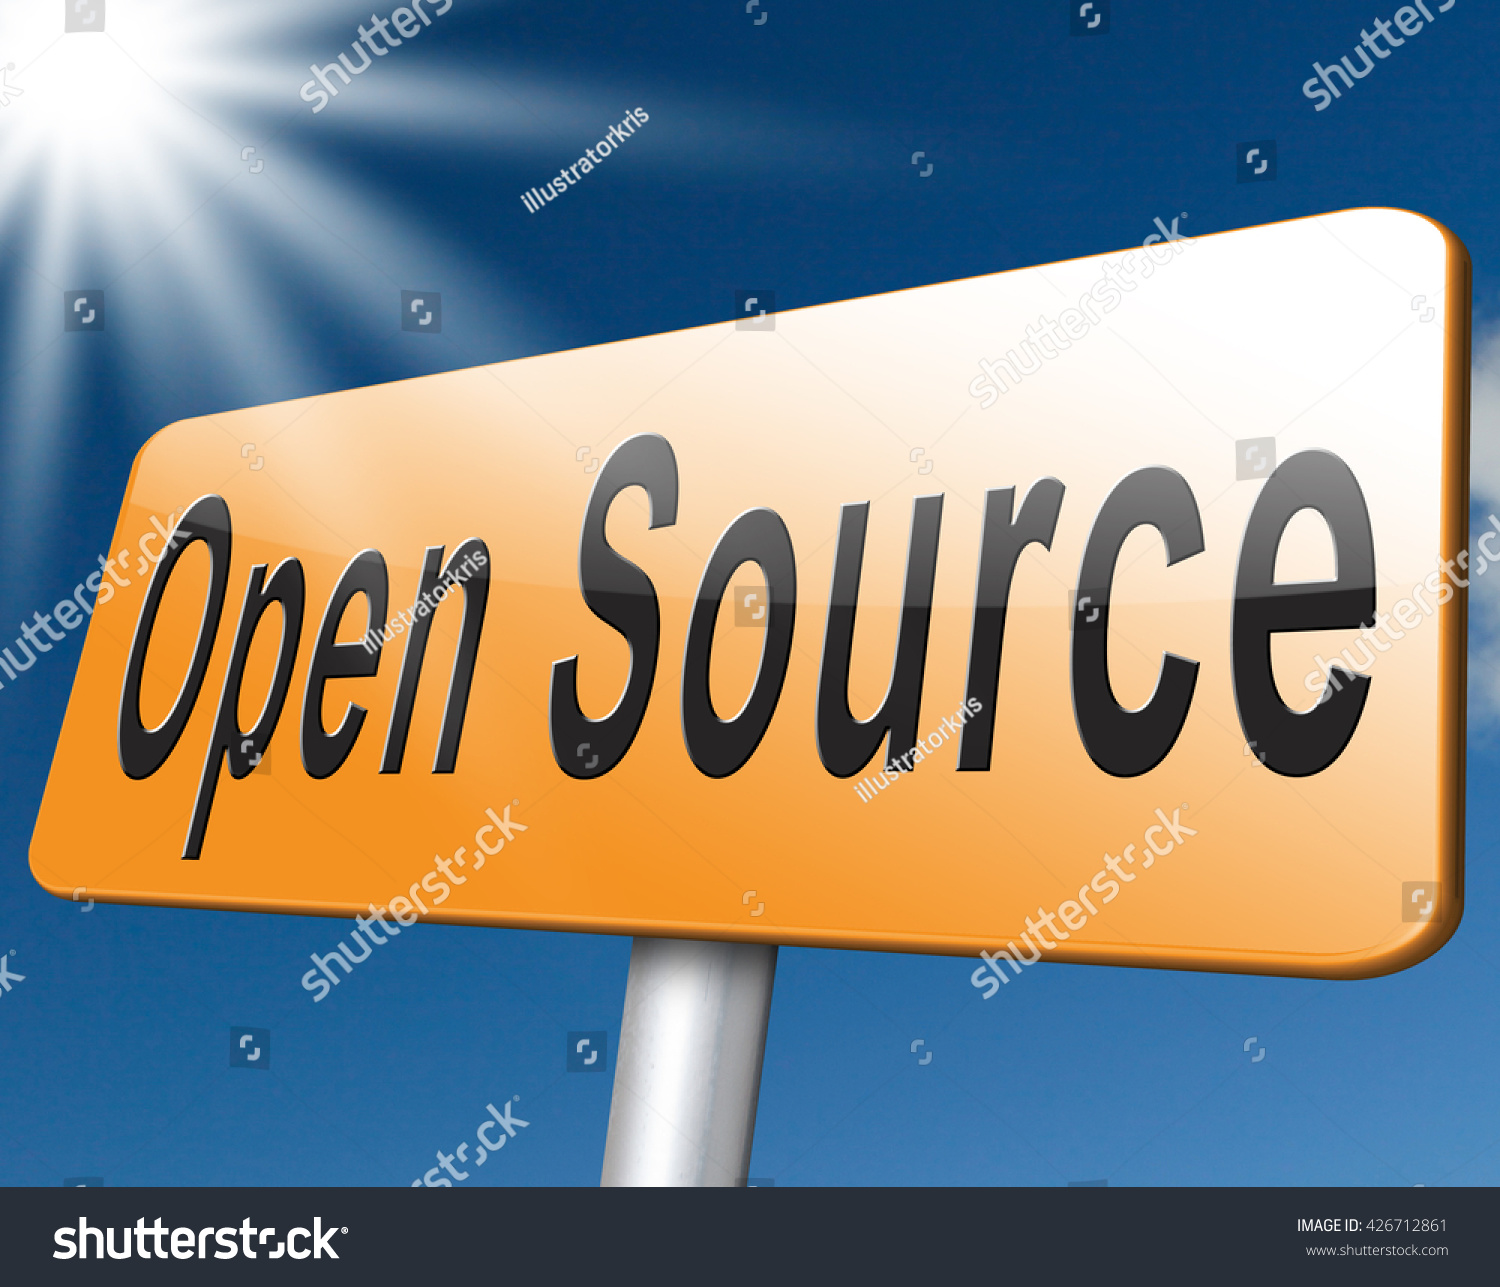 Freeware Banking Software Royalty Free Stock Illustration Of Open Source Program Software